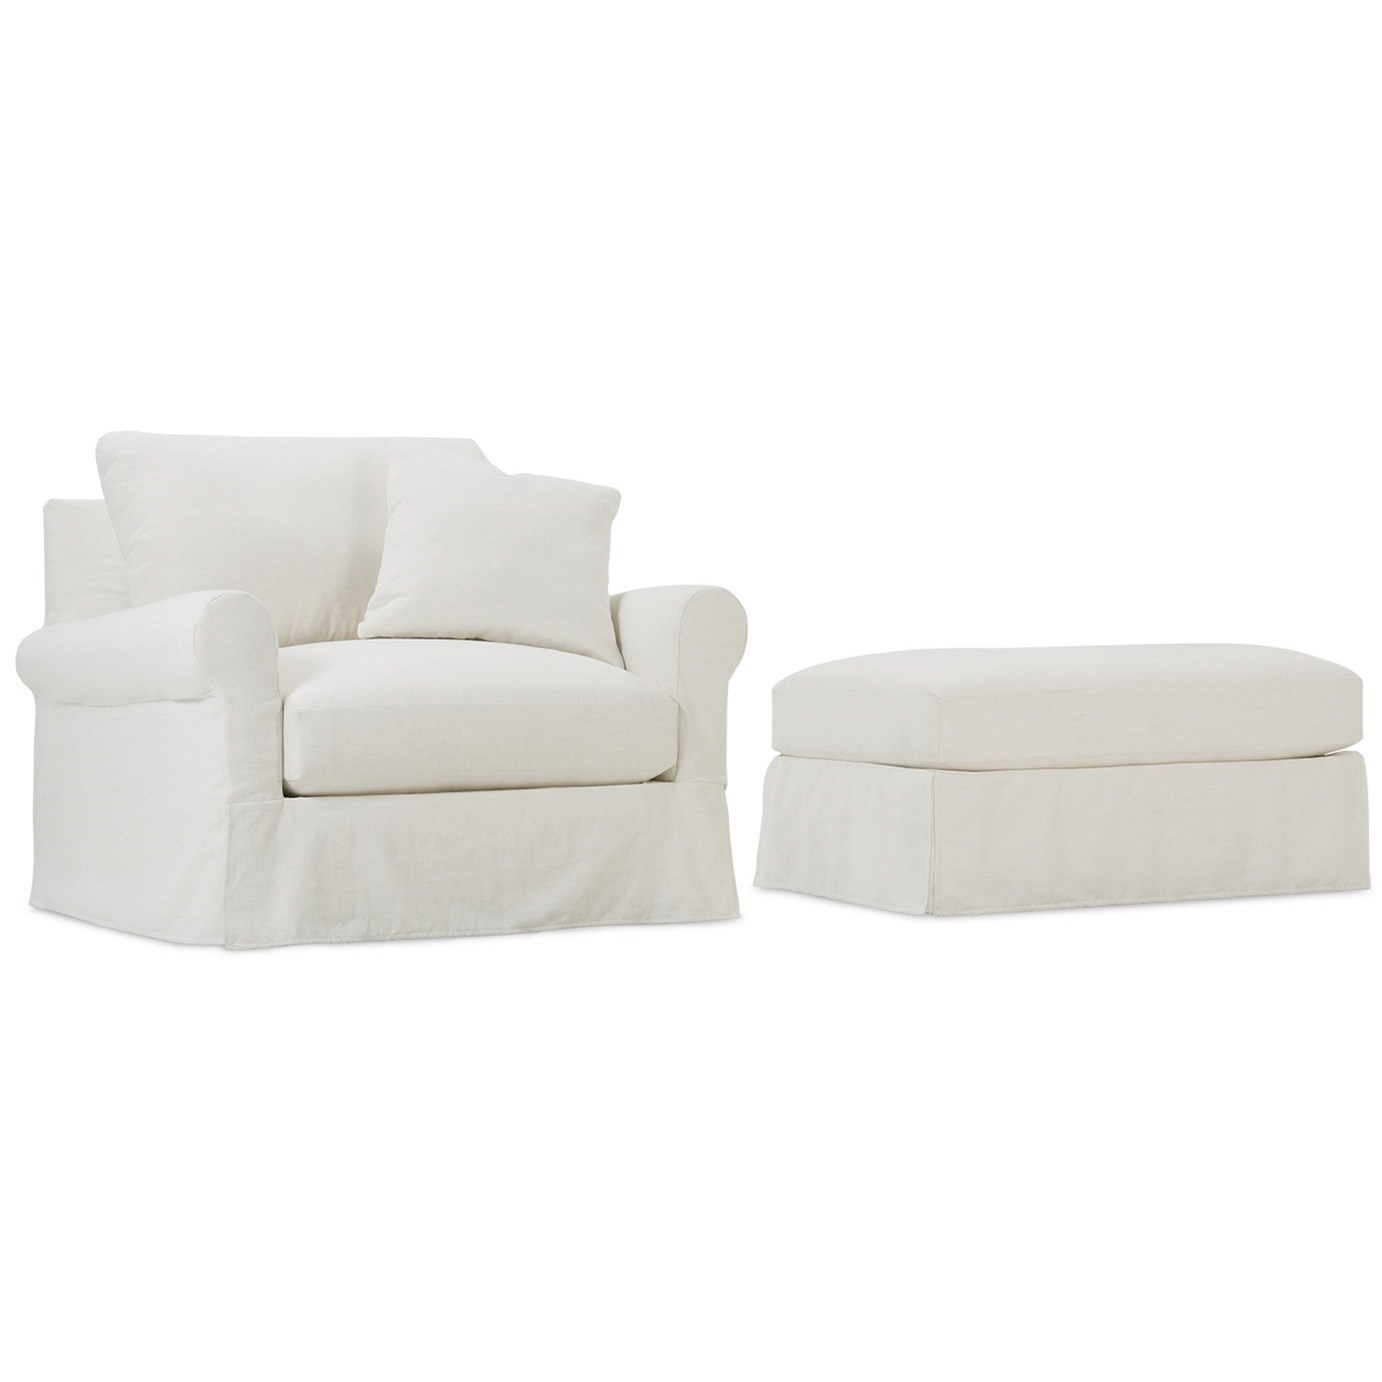 Aberdeen Slipcovered Chair and Ottoman by Rowe at Baer's Furniture